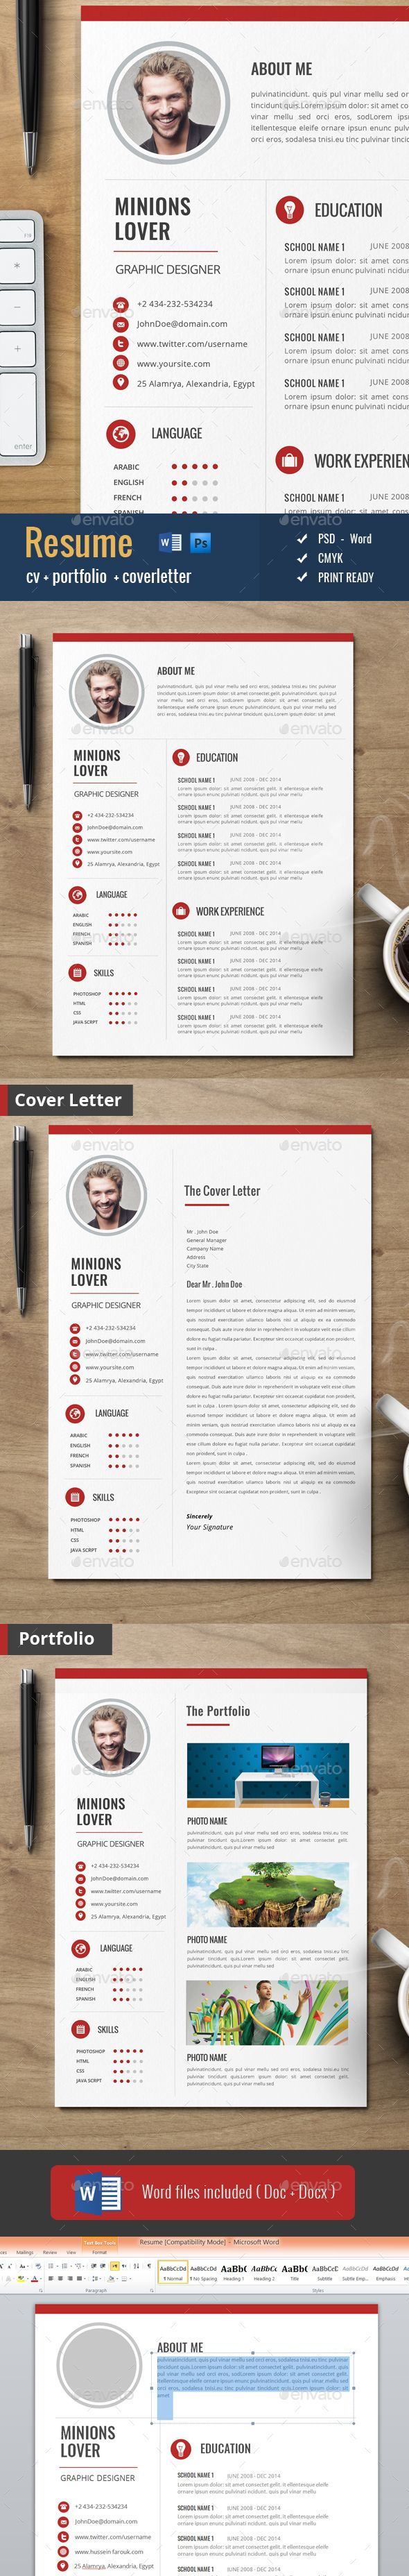 Best InfographicVisual Graphic Resume Images On